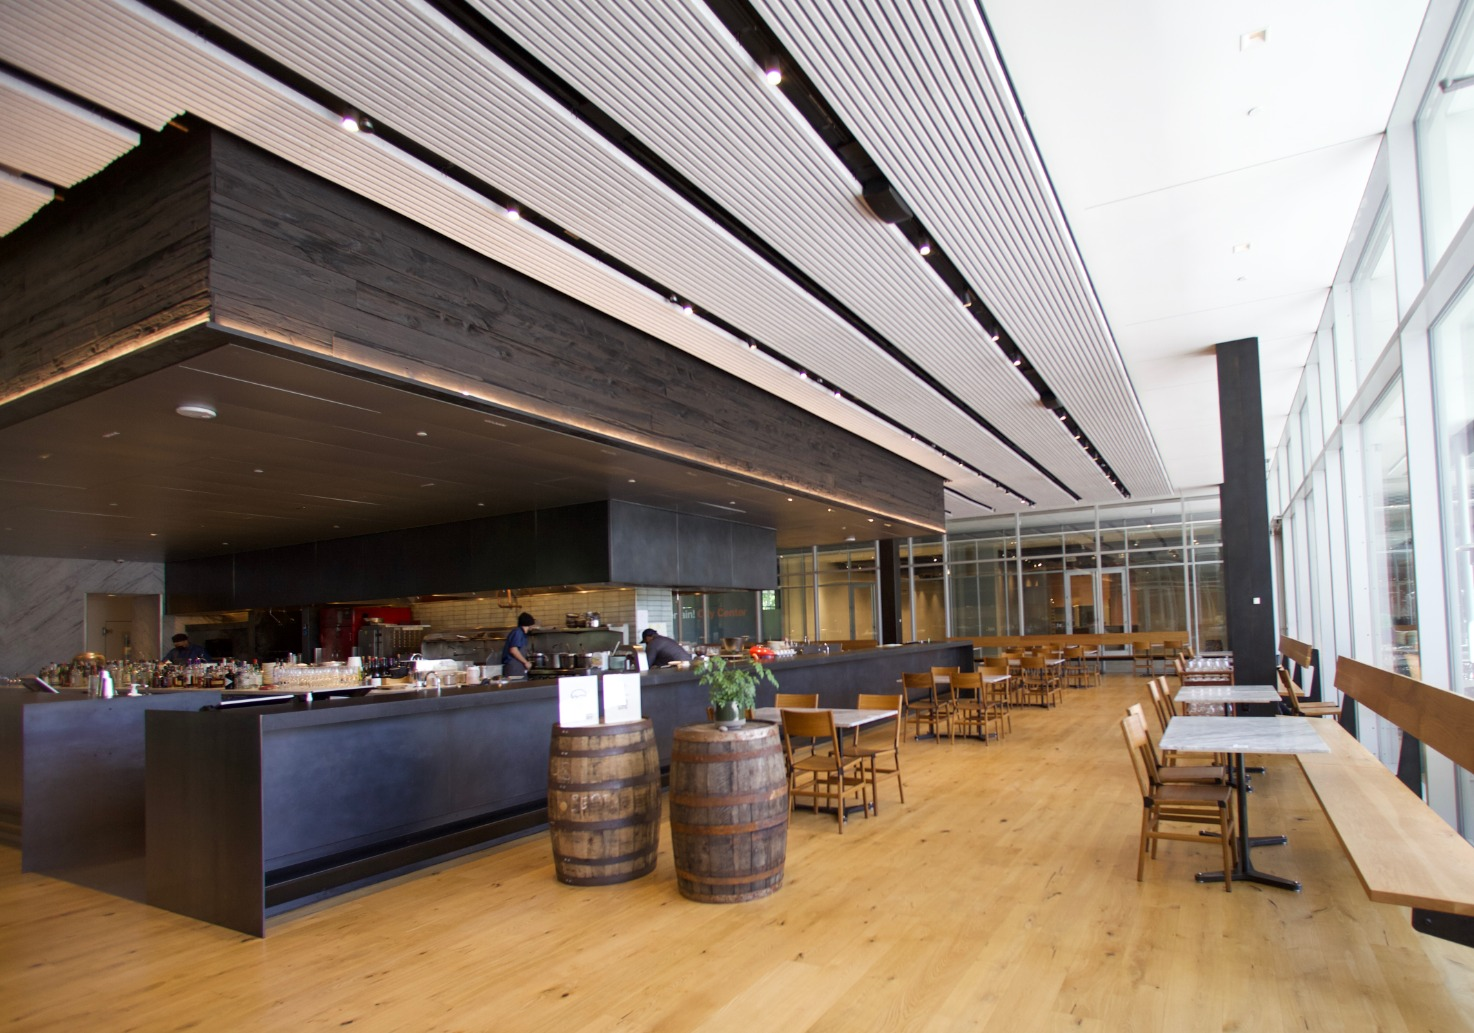 Dining room of The Slanted Door San Ramon with open kitchen